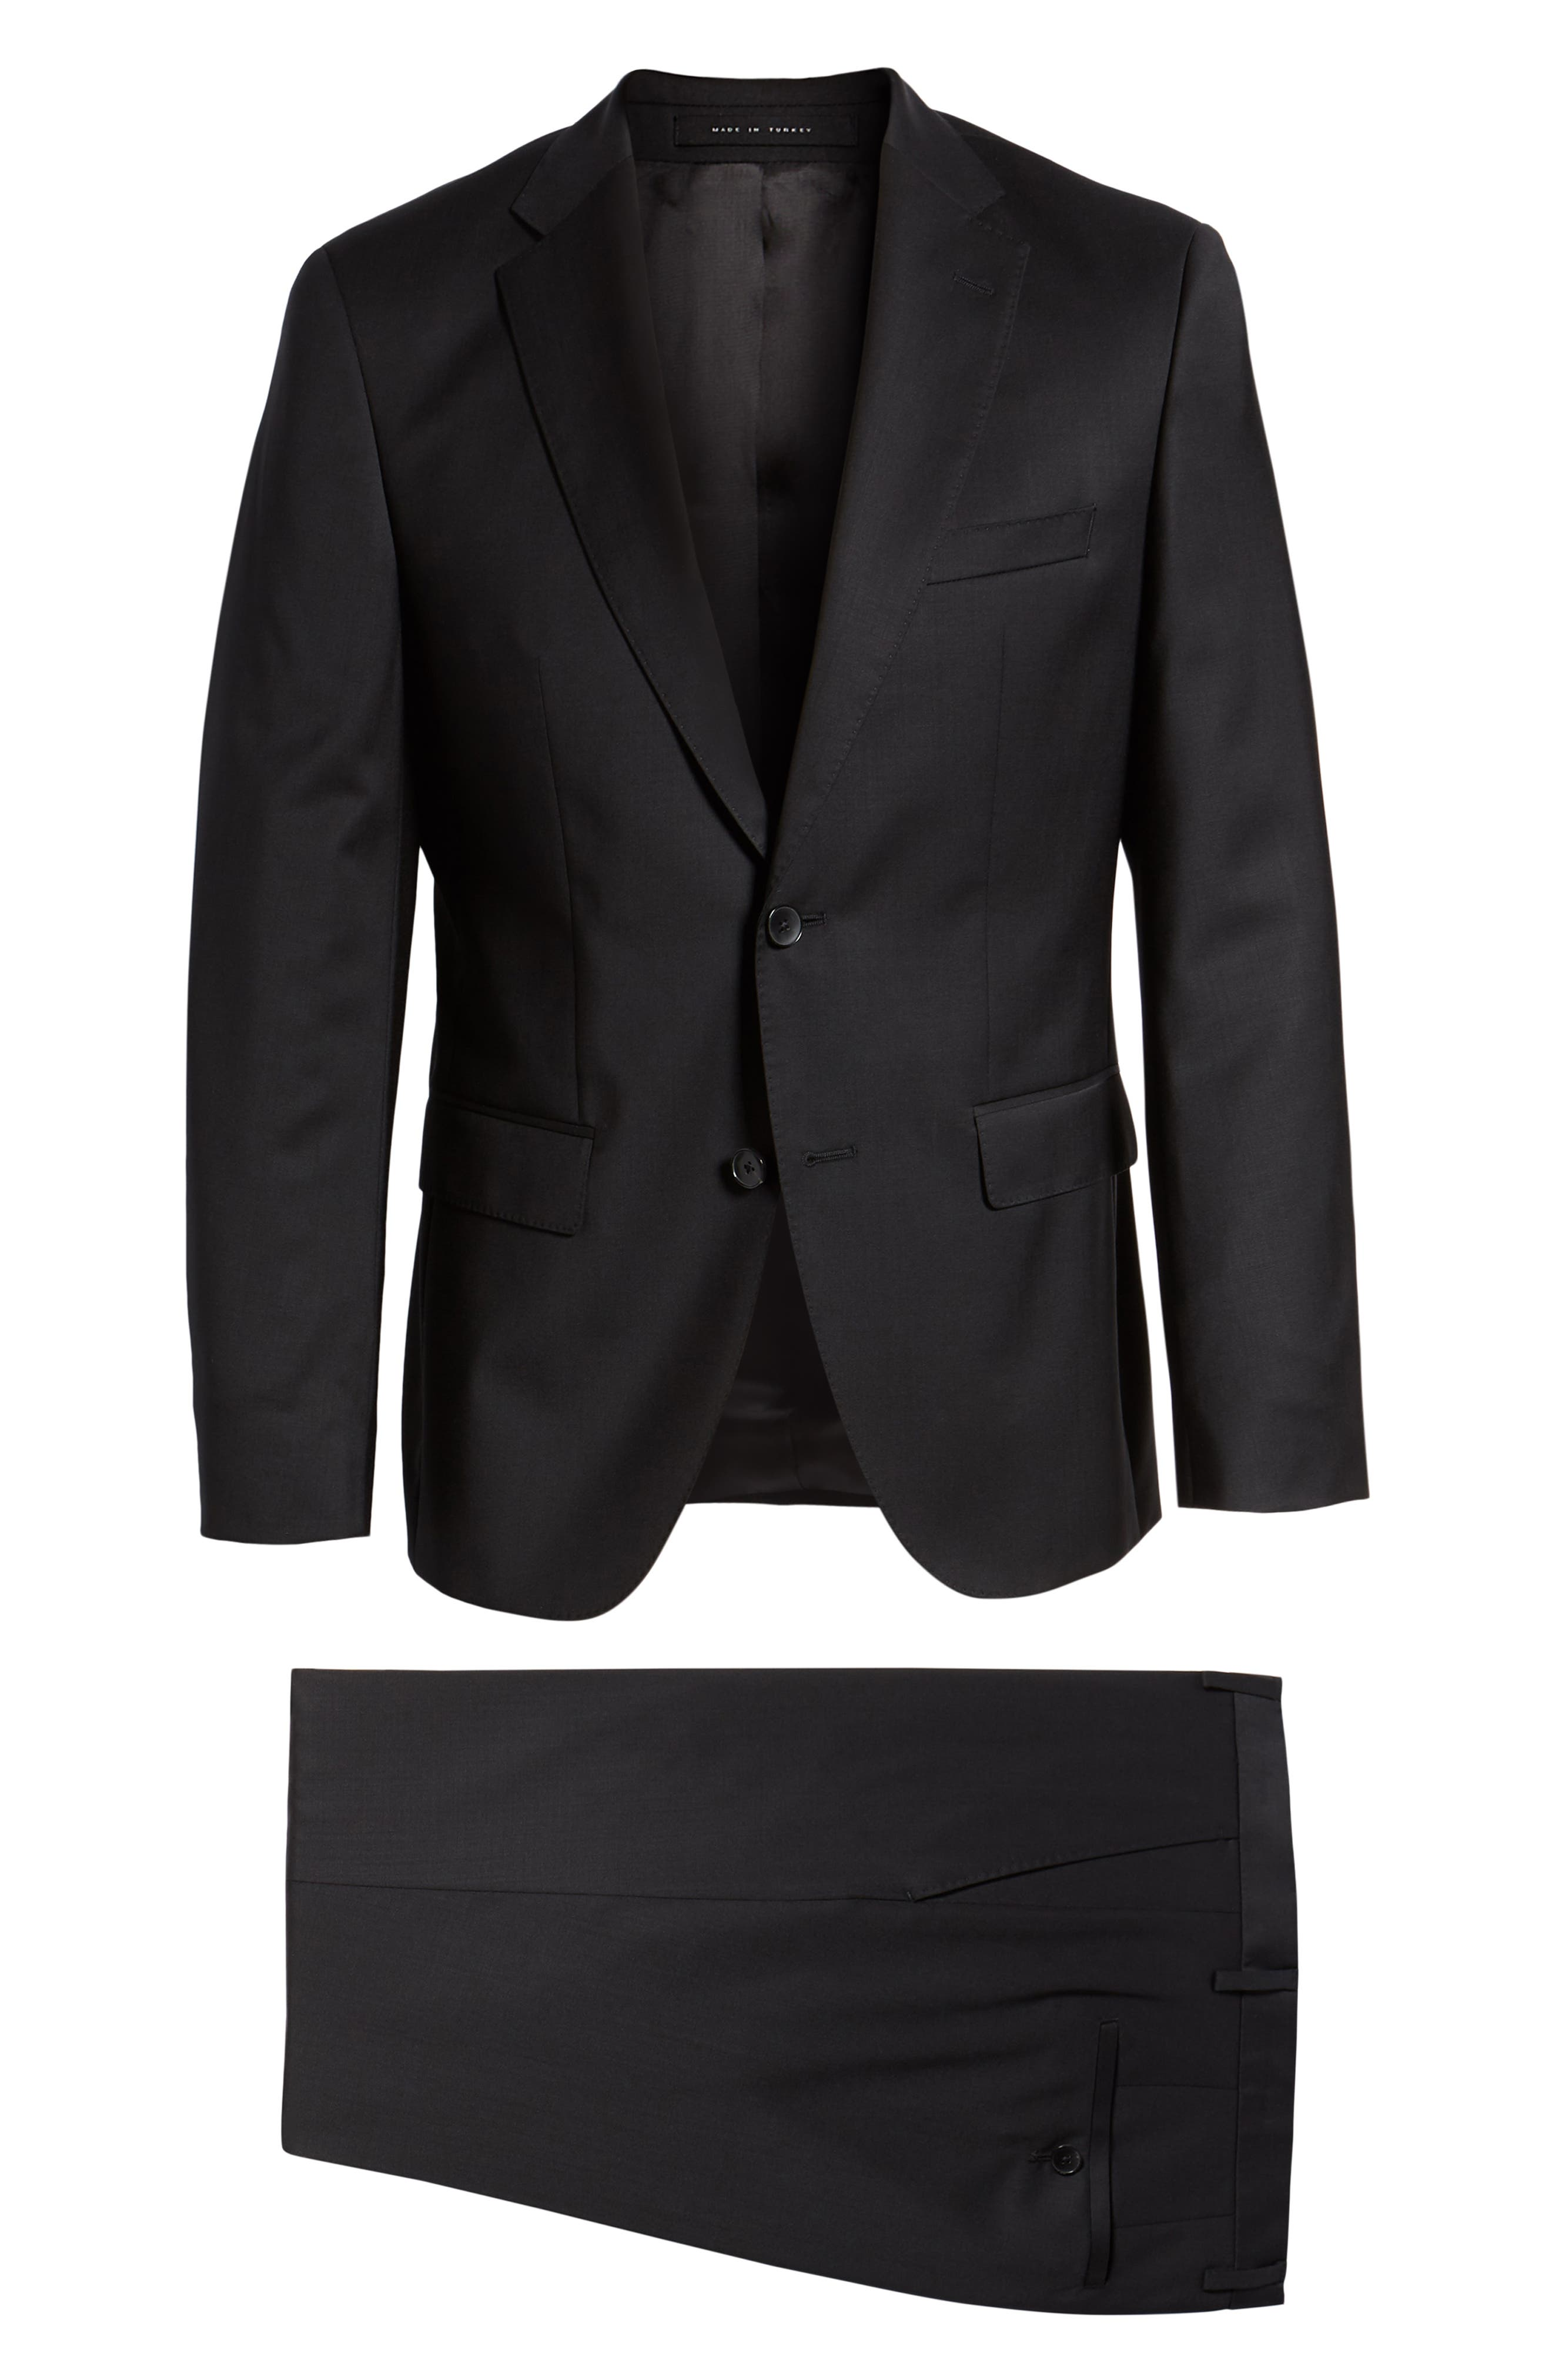 BOSS, Johnstons/Lenon Classic Fit Solid Wool Suit, Alternate thumbnail 8, color, BLACK